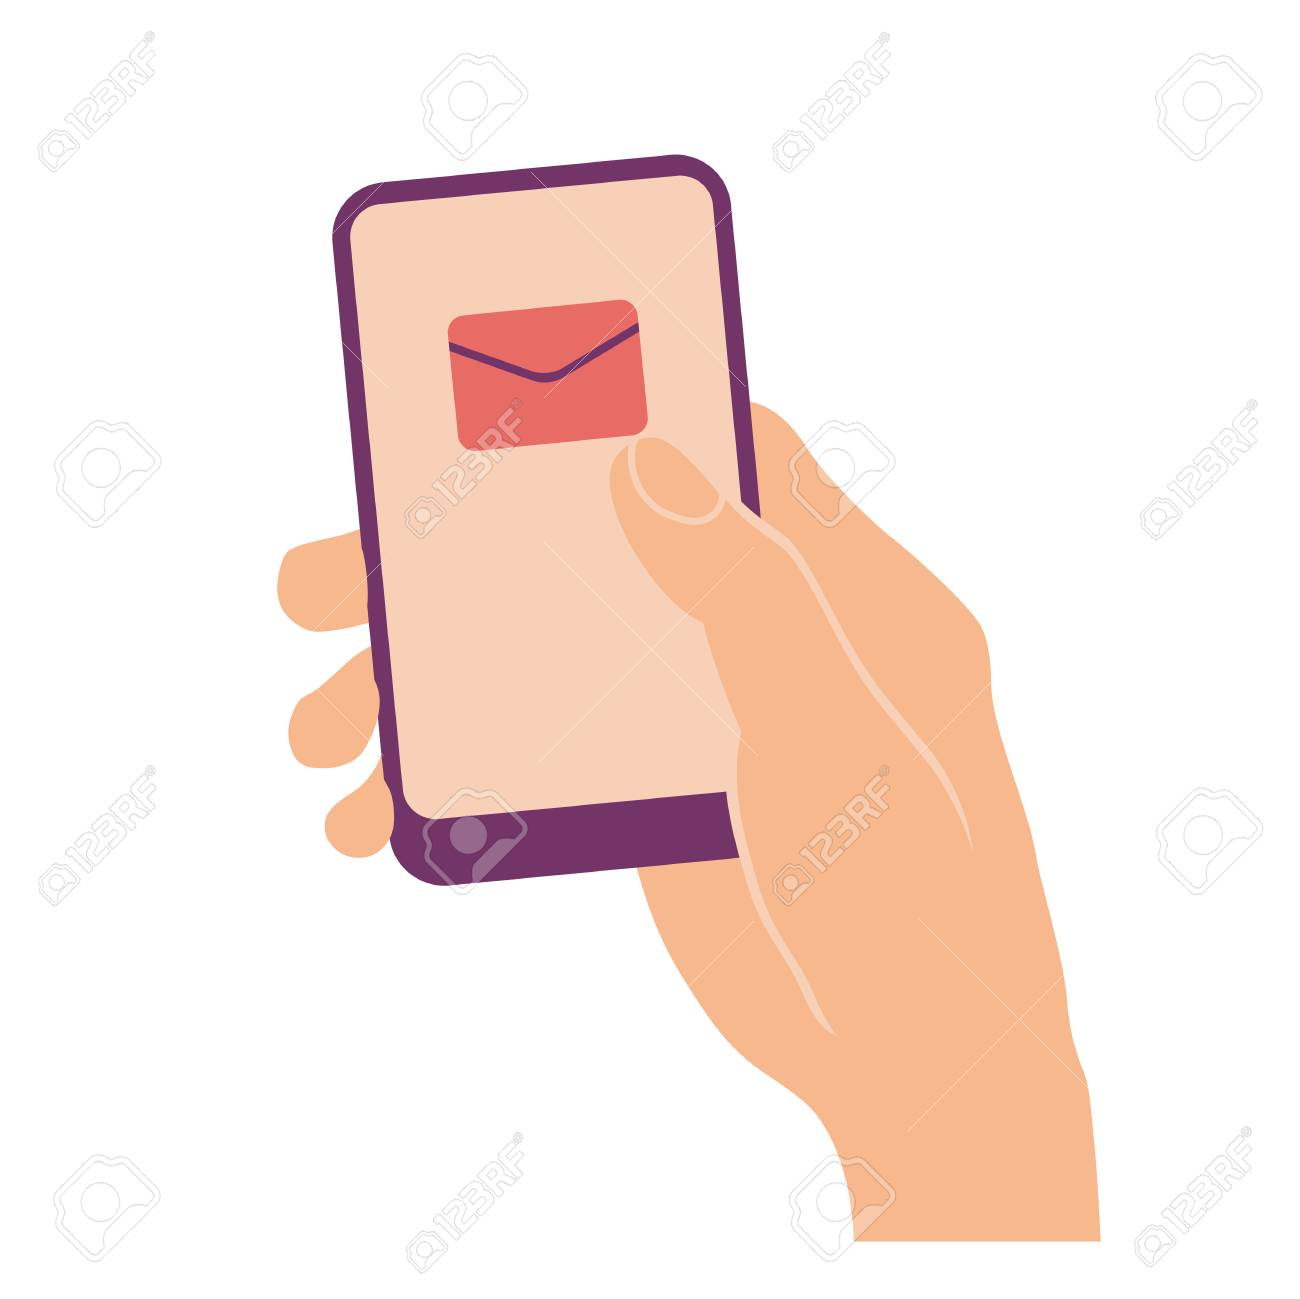 Hand holding and pointing on mobile phone with envelope on screen